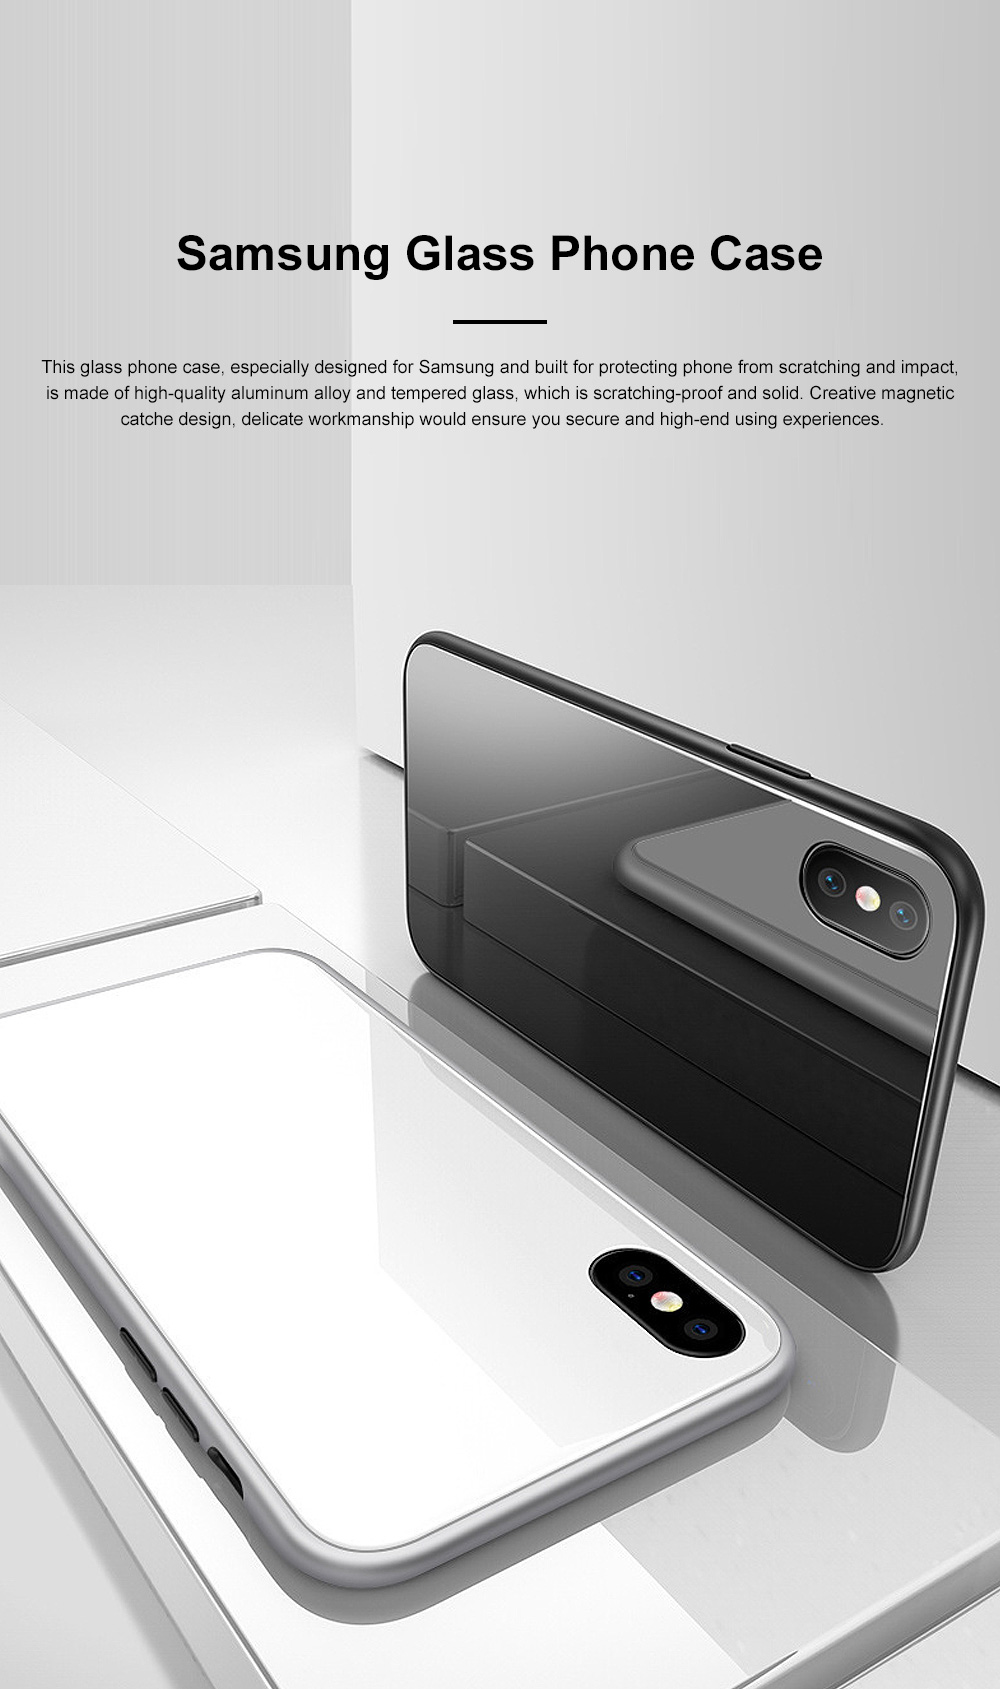 Minimalist Delicate Firmed Magnetic Catche Glass Samsung Phone Case Shock-proof Aluminum Alloy Phone Protective Cover For Samsung note 9, Samsung S9, Samsung s9 plus 0